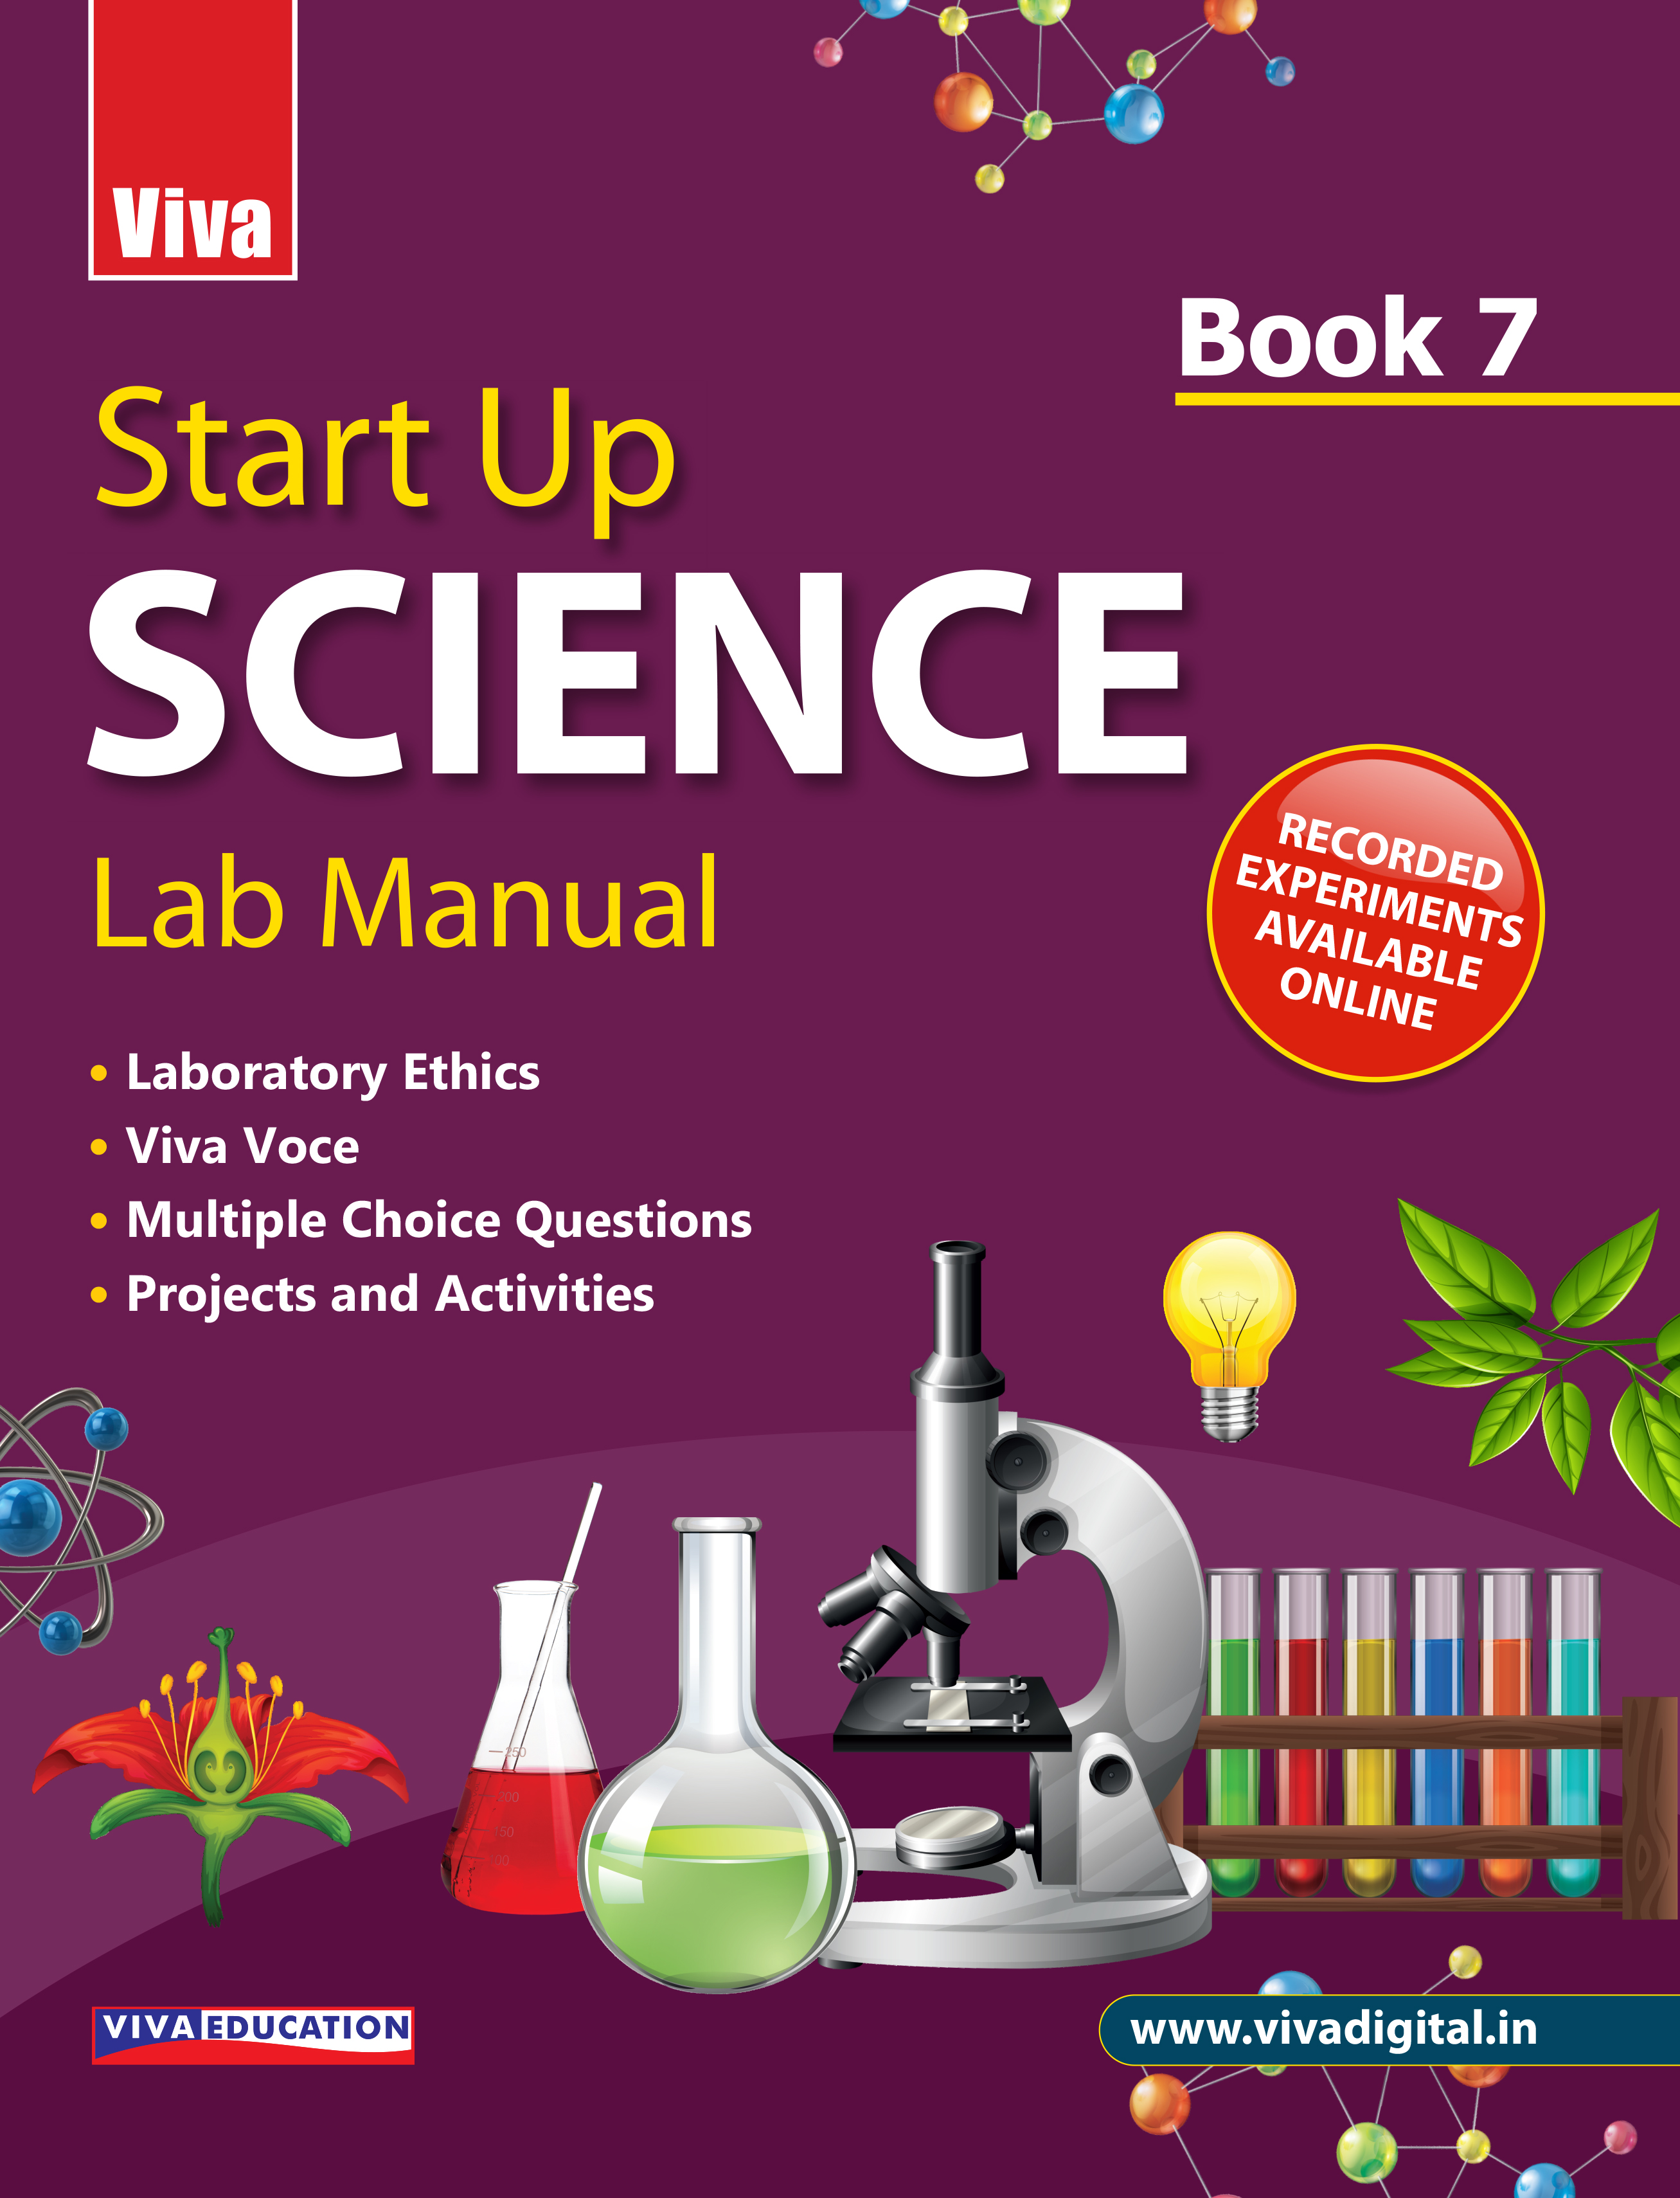 Start Up Science Lab Manual - 7